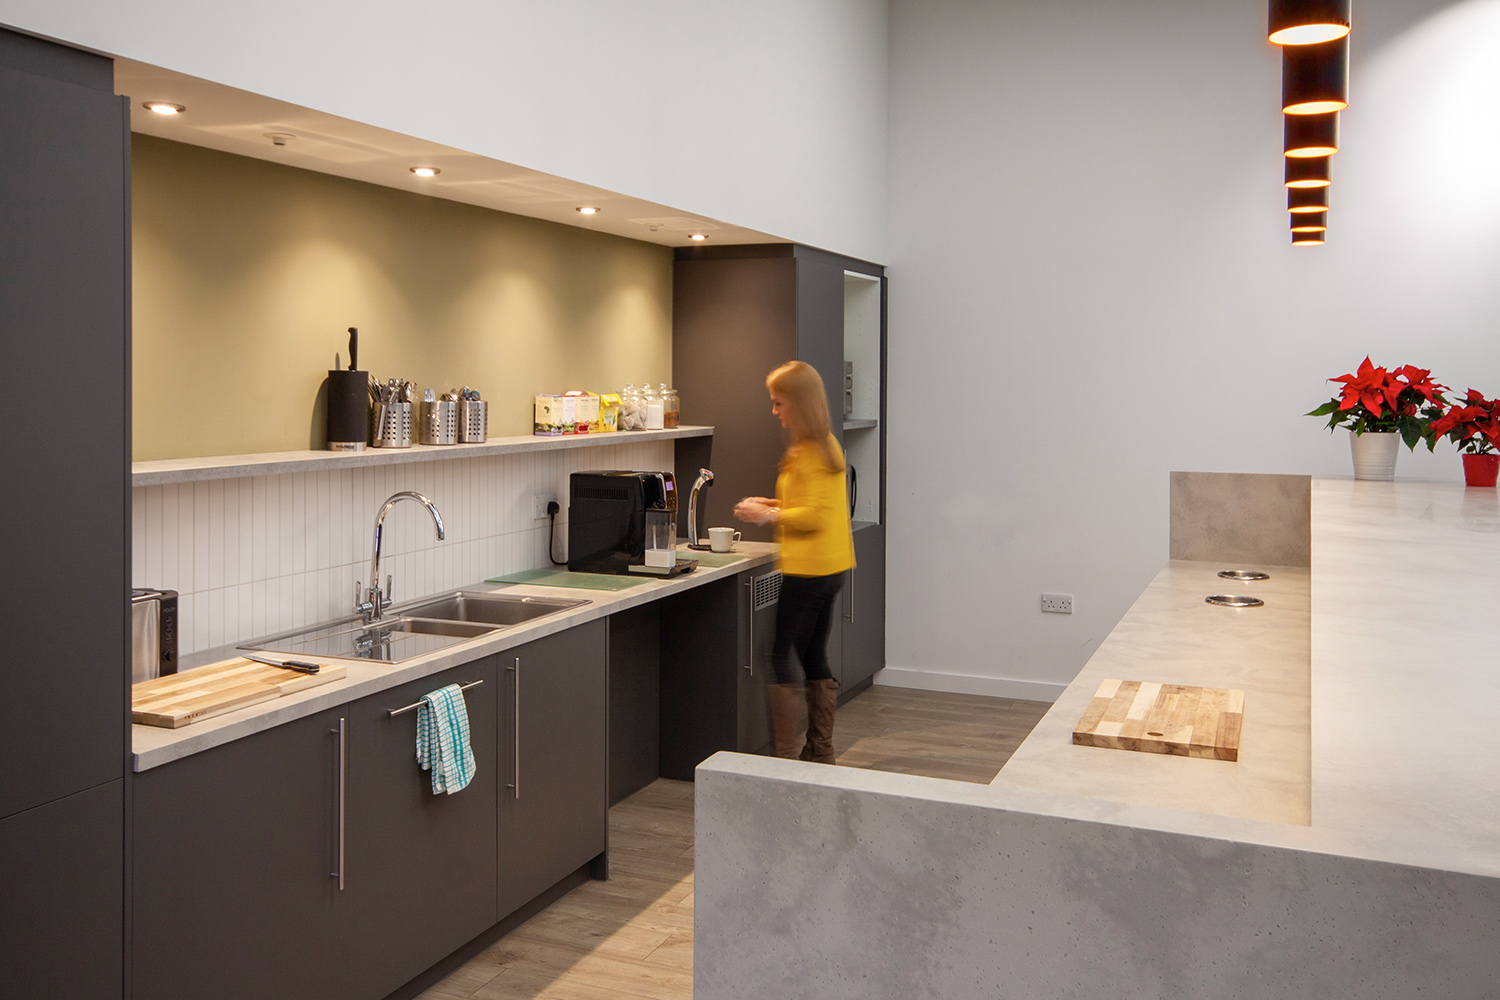 Photograph of woman using the open plan kitchen at BuroHappold's new Leeds office